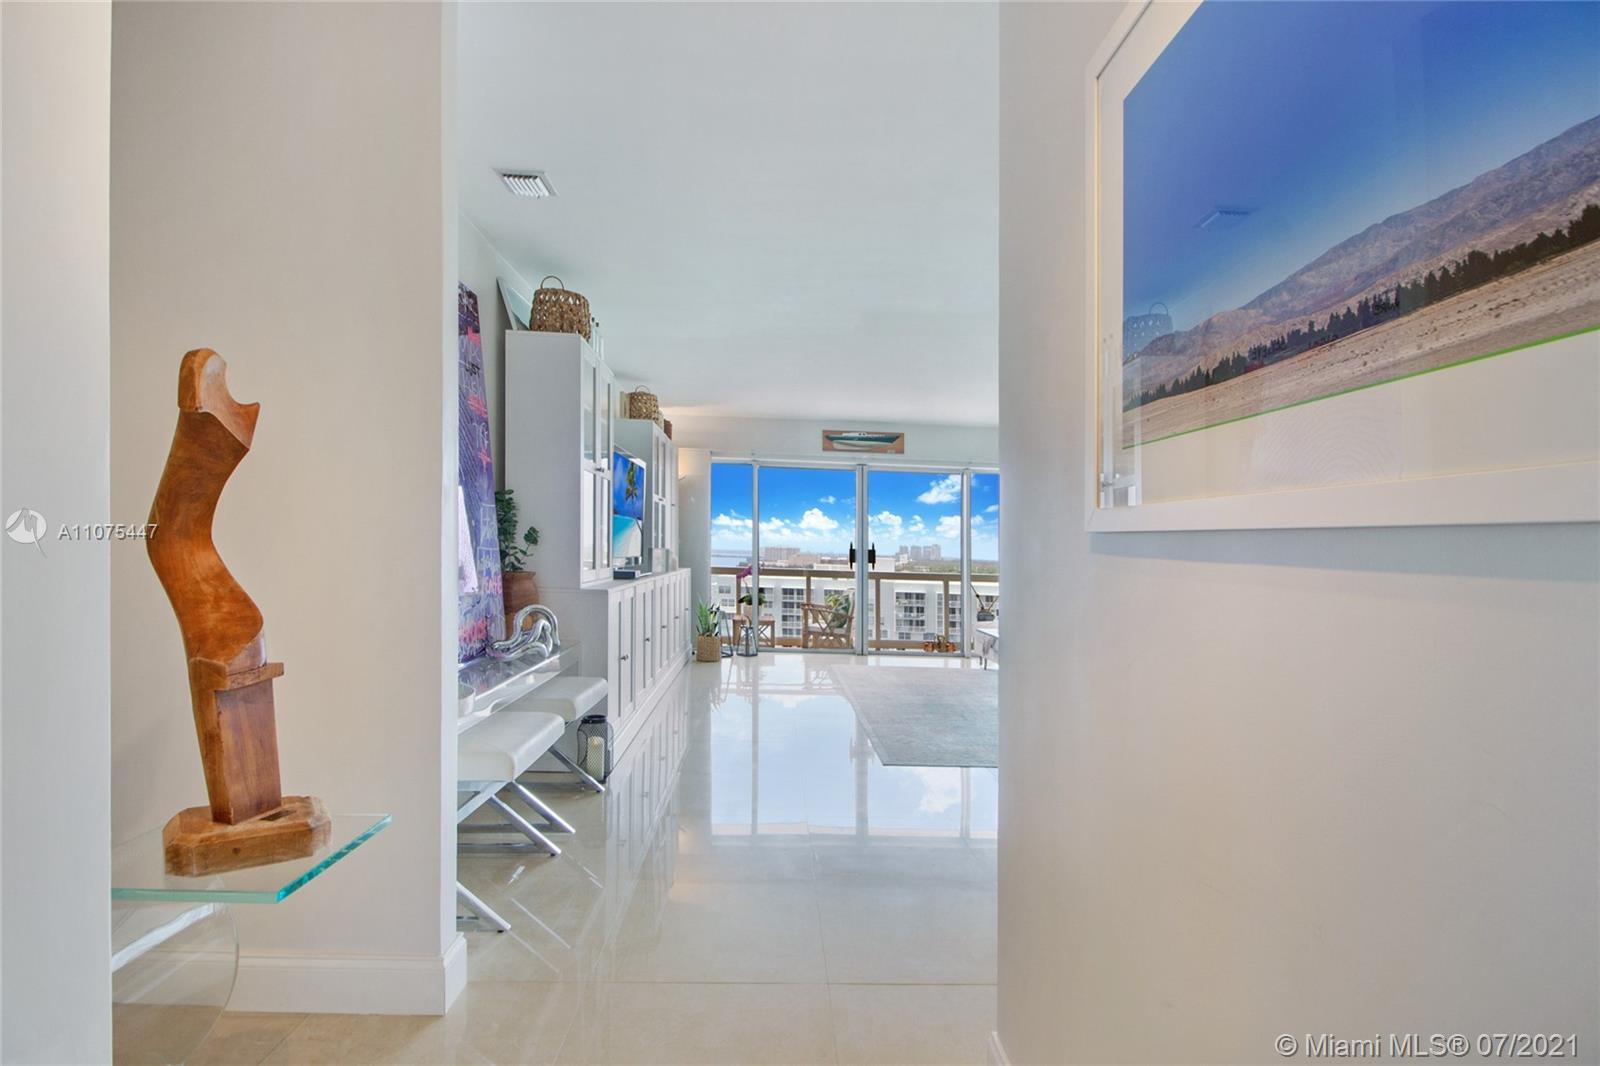 Step into this charming and bright 2 bedroom/2 bathroom unit with 1,188 sq ft at Brickell Townhouse.